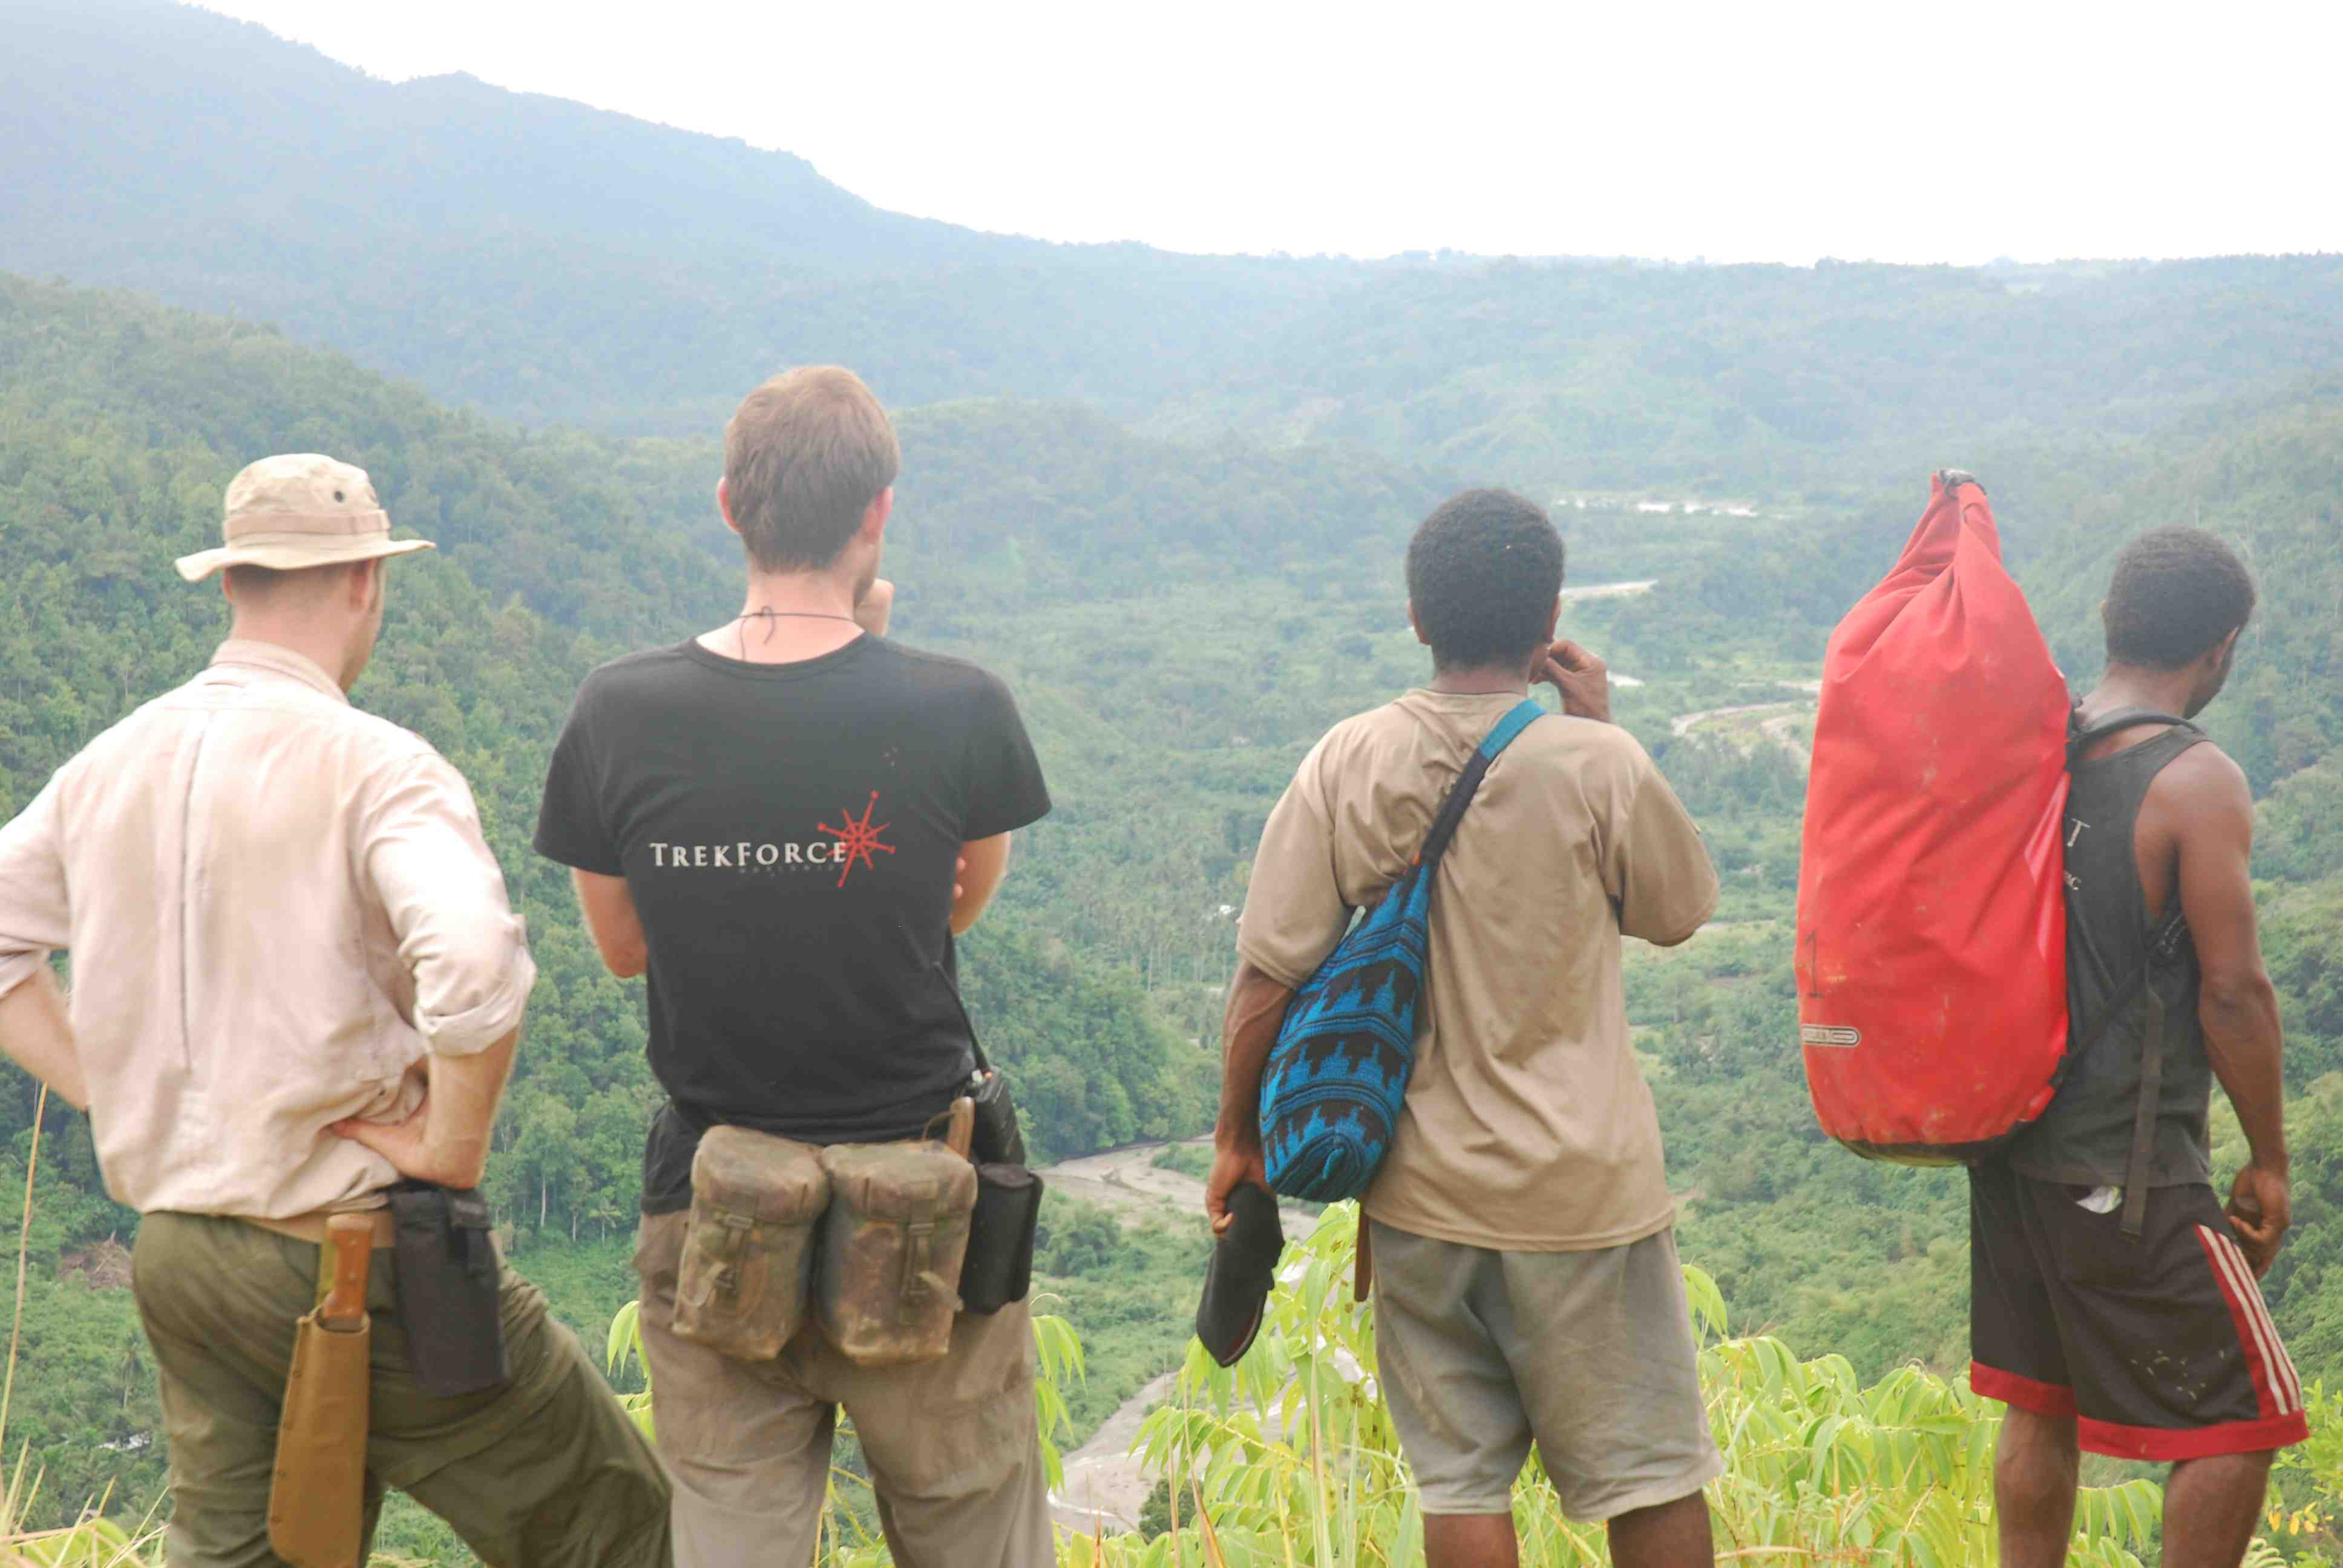 Surveying the land in Papua New Guinea. Photo credit: TrekForce